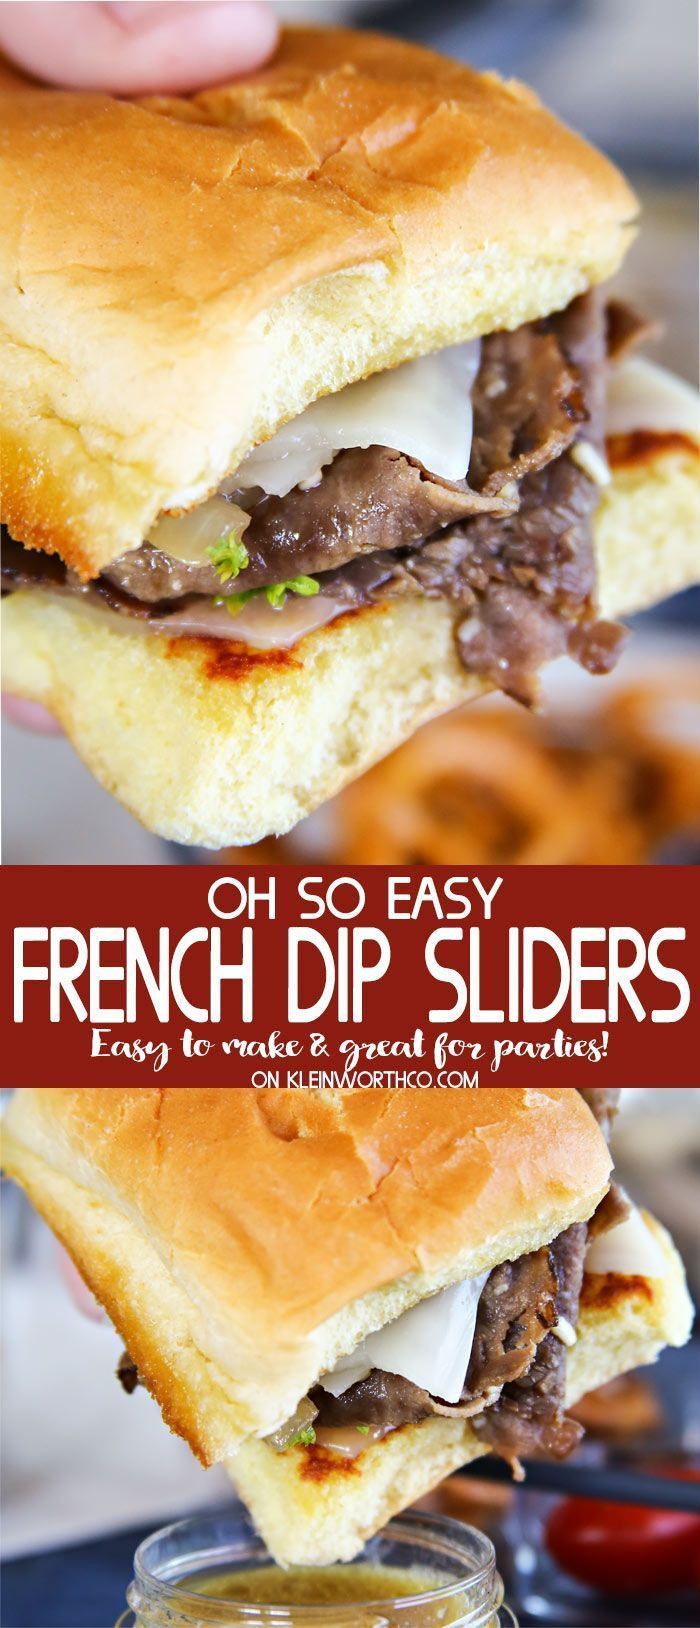 Easy French Dip Sliders are great for picnics, parties & tailgating fun. Simple to make, with homemade au jus for dipping these roast beef & caramelized onion sliders. AD